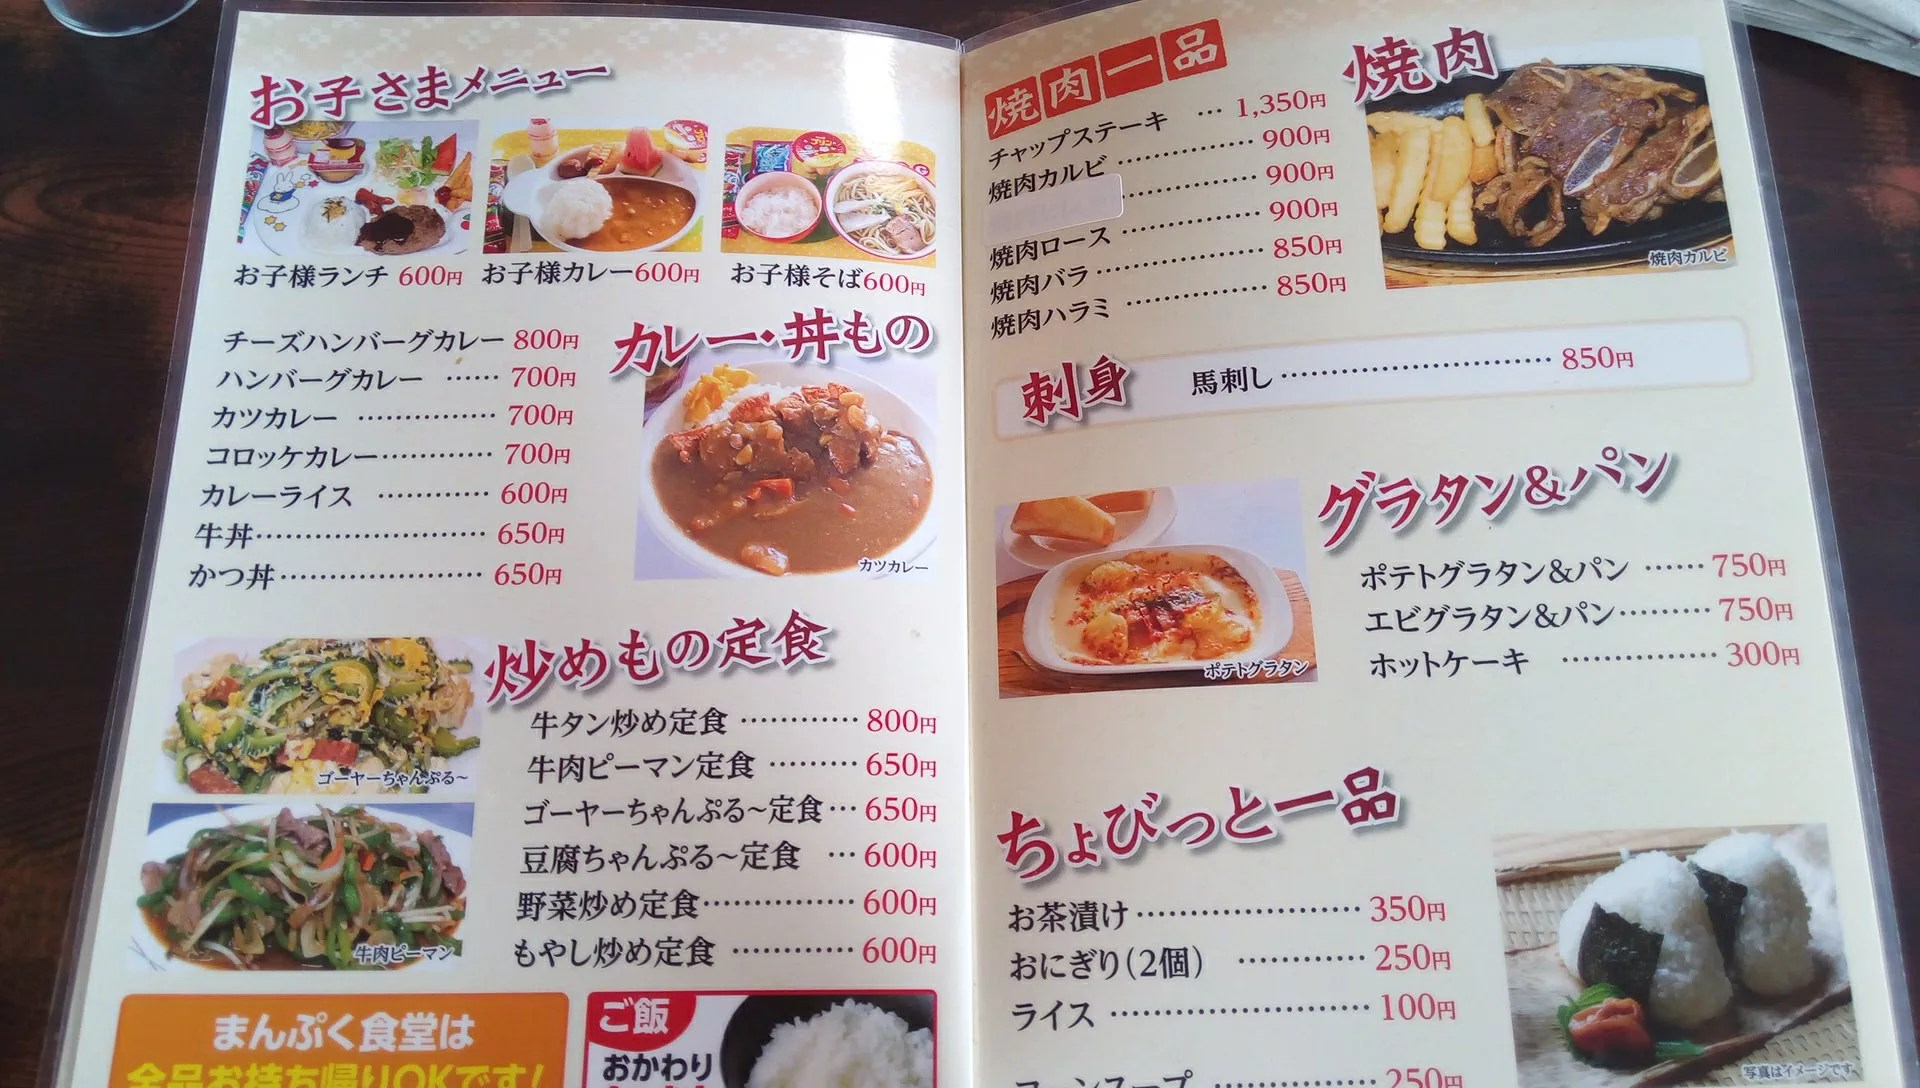 The menu of Manpuku restaurant 2